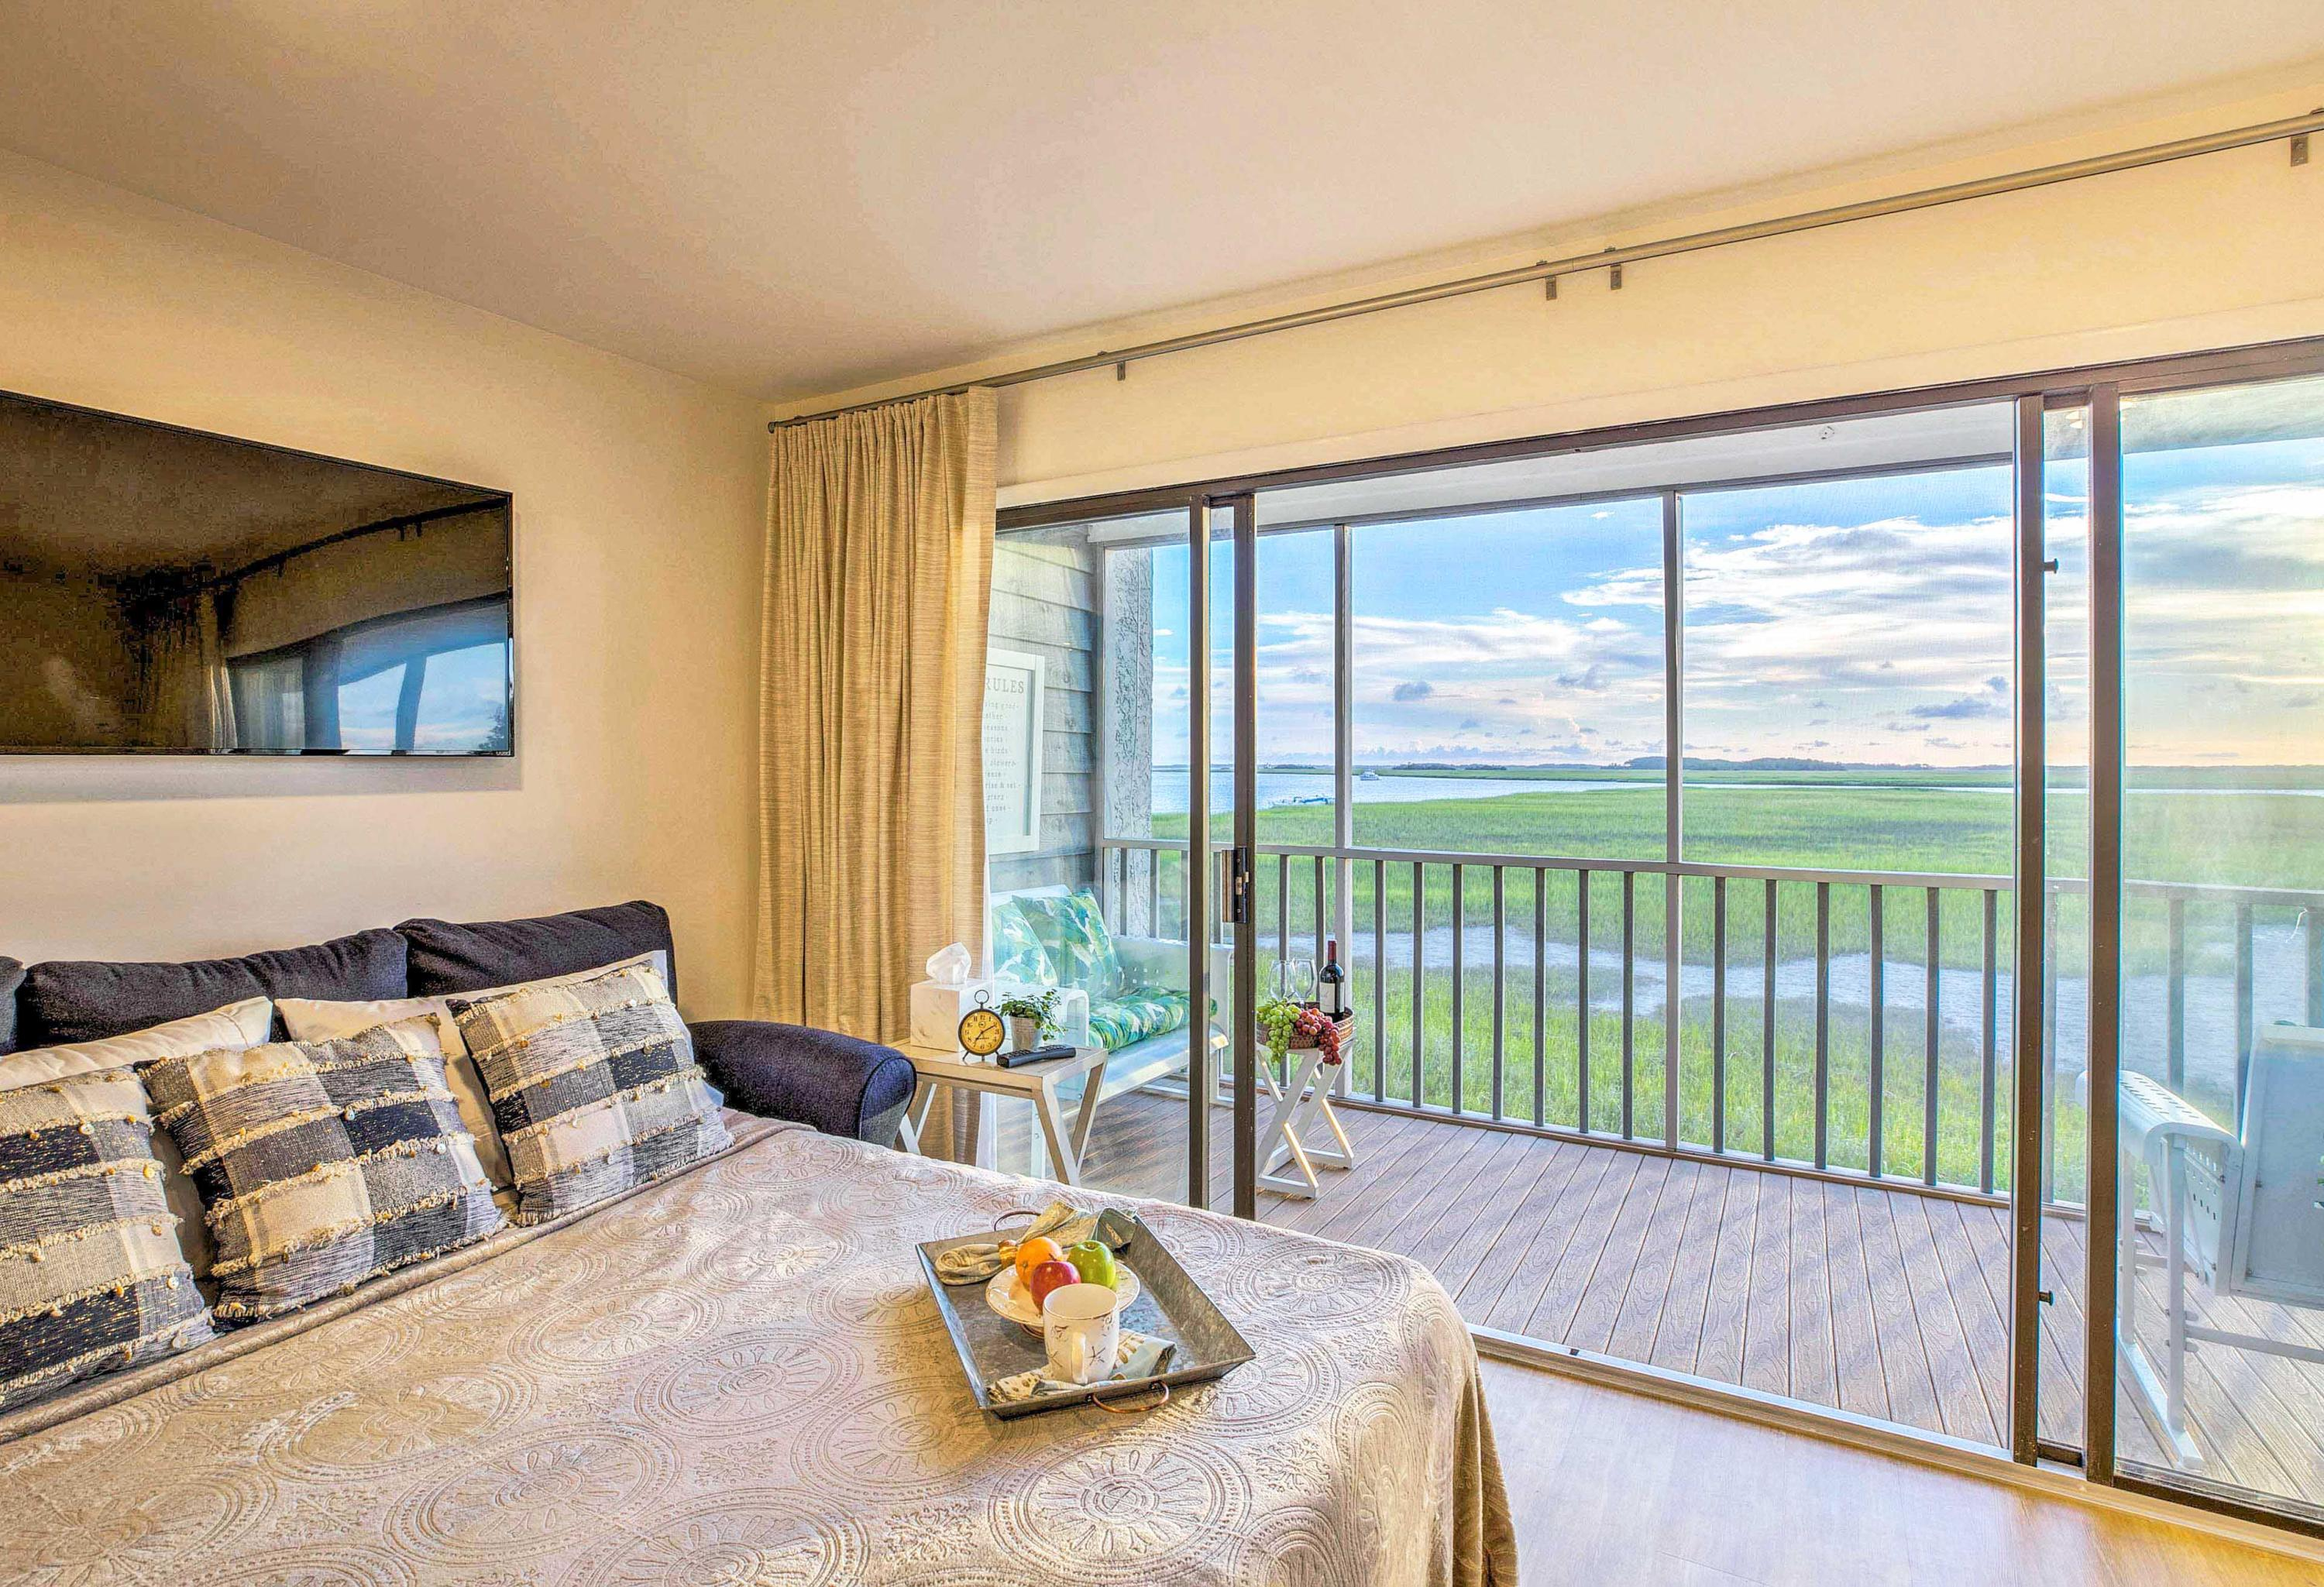 Mariners Cay Homes For Sale - 93 Mariners Cay, Folly Beach, SC - 27